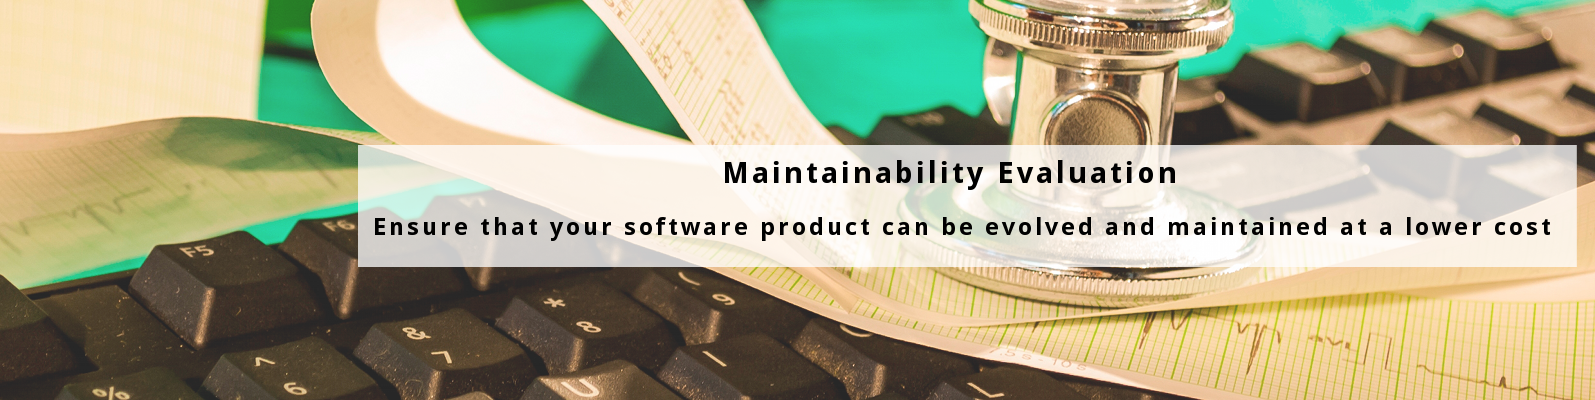 Maintainability Evaluation - ISO/IEC 25000